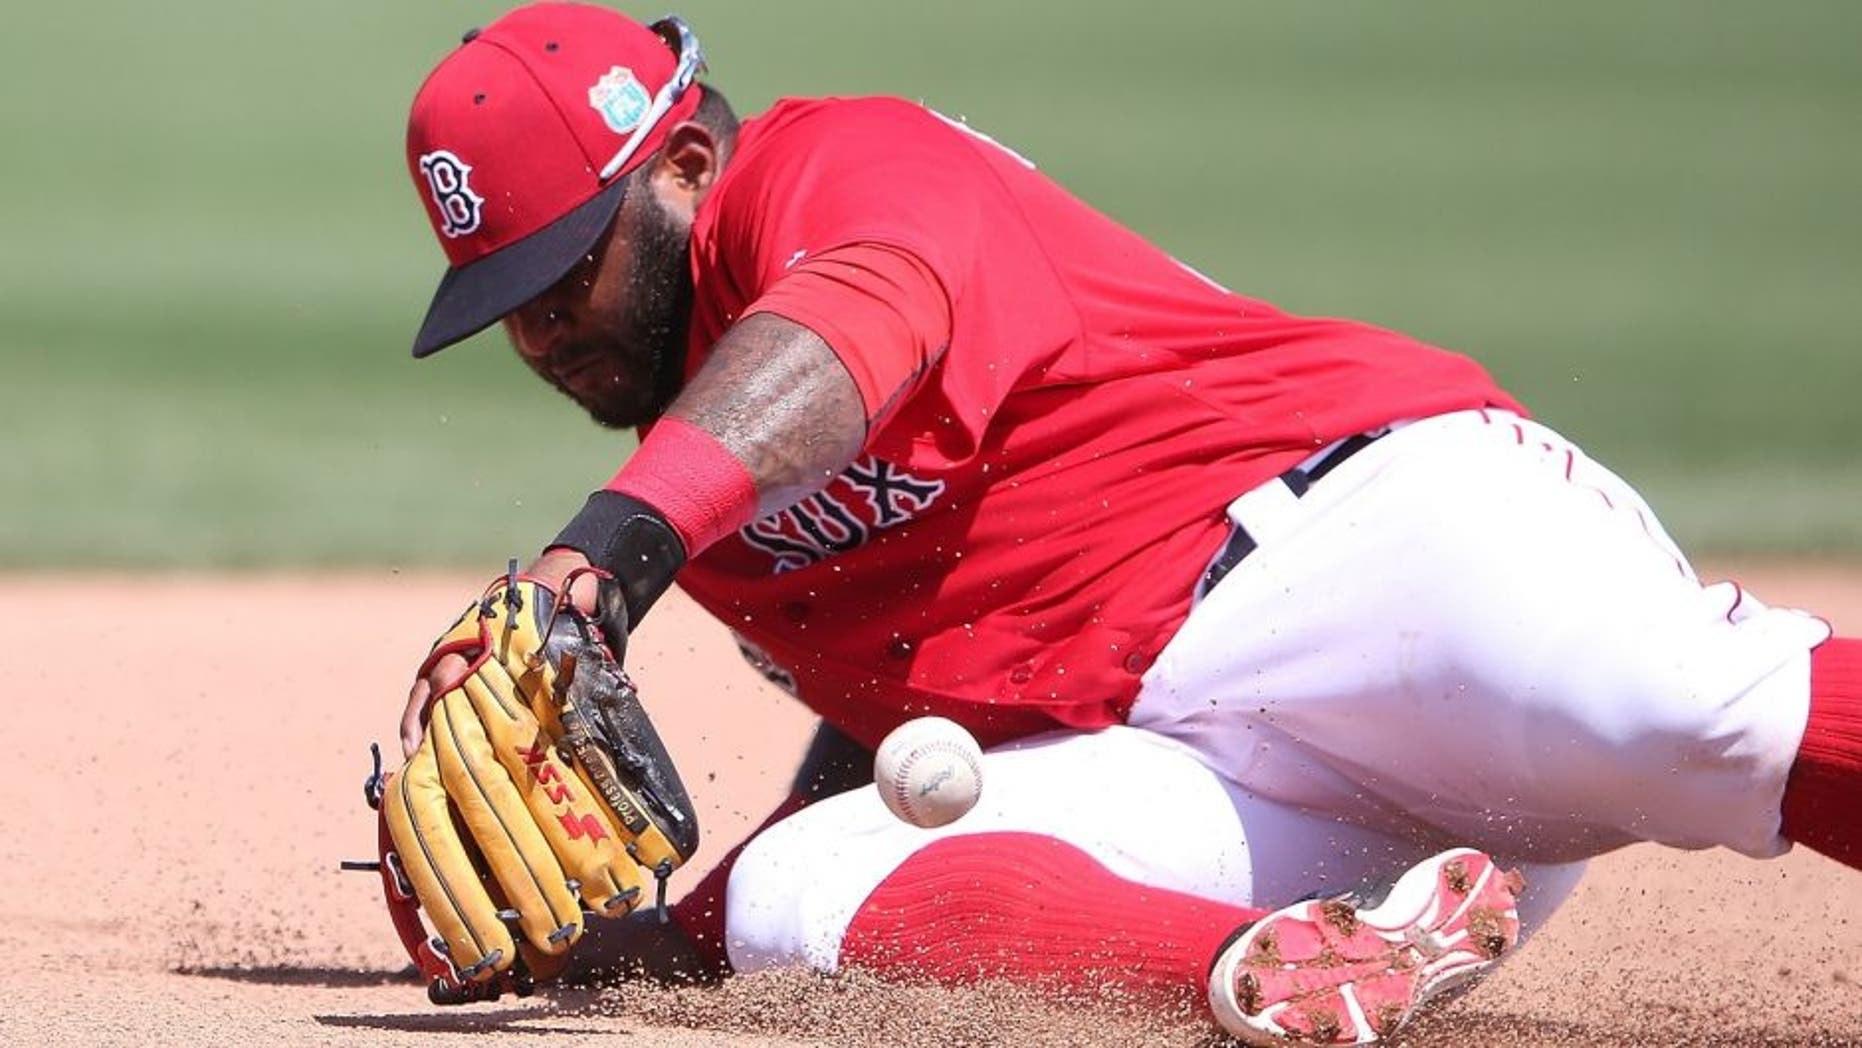 FORT MYERS, - MARCH 14: Pablo Sandoval #48 of the Boston Red Sox knocks the ball down at third base on the ground ball from Jason Rogers (not in photo) of the Pittsburgh Pirates an makes the play to first base for the out during the fourth inning of the Spring Training Game on March 14, 2016 at Jet Blue Park at Fenway South, Florida. The Pirates defeated the Red Sox 3-1. (Photo by Leon Halip/Getty Images)